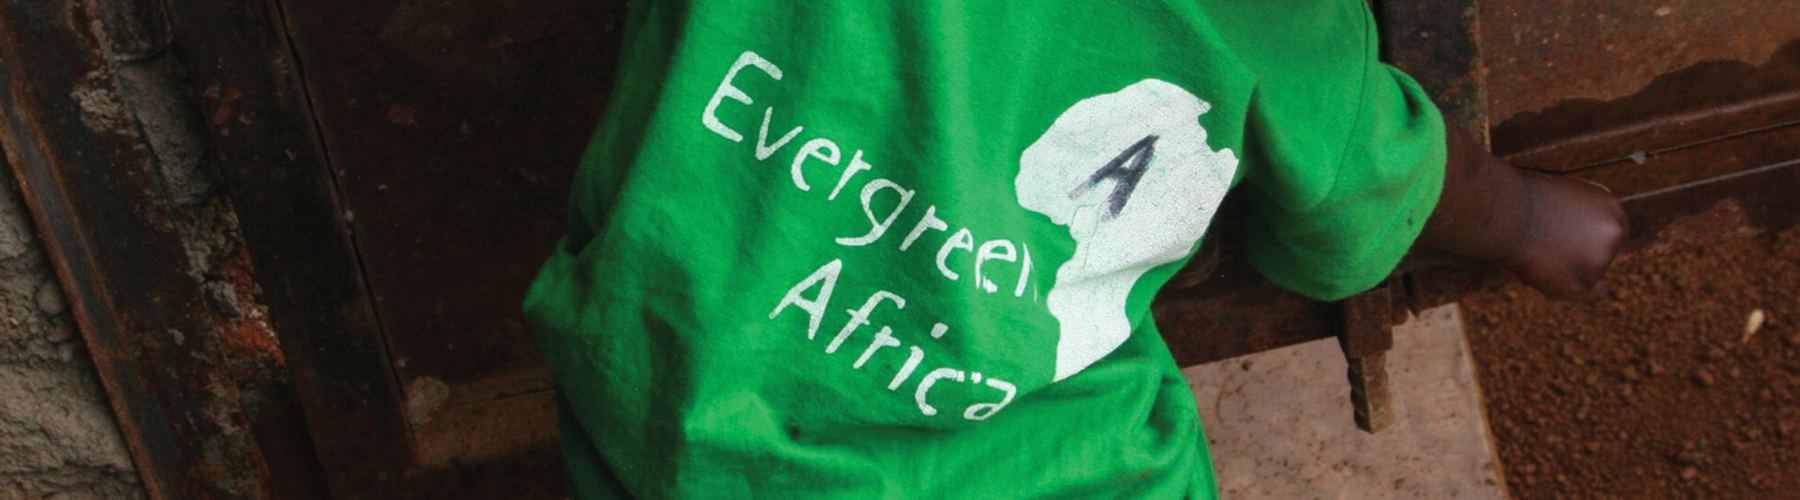 evergreen-africa-charity